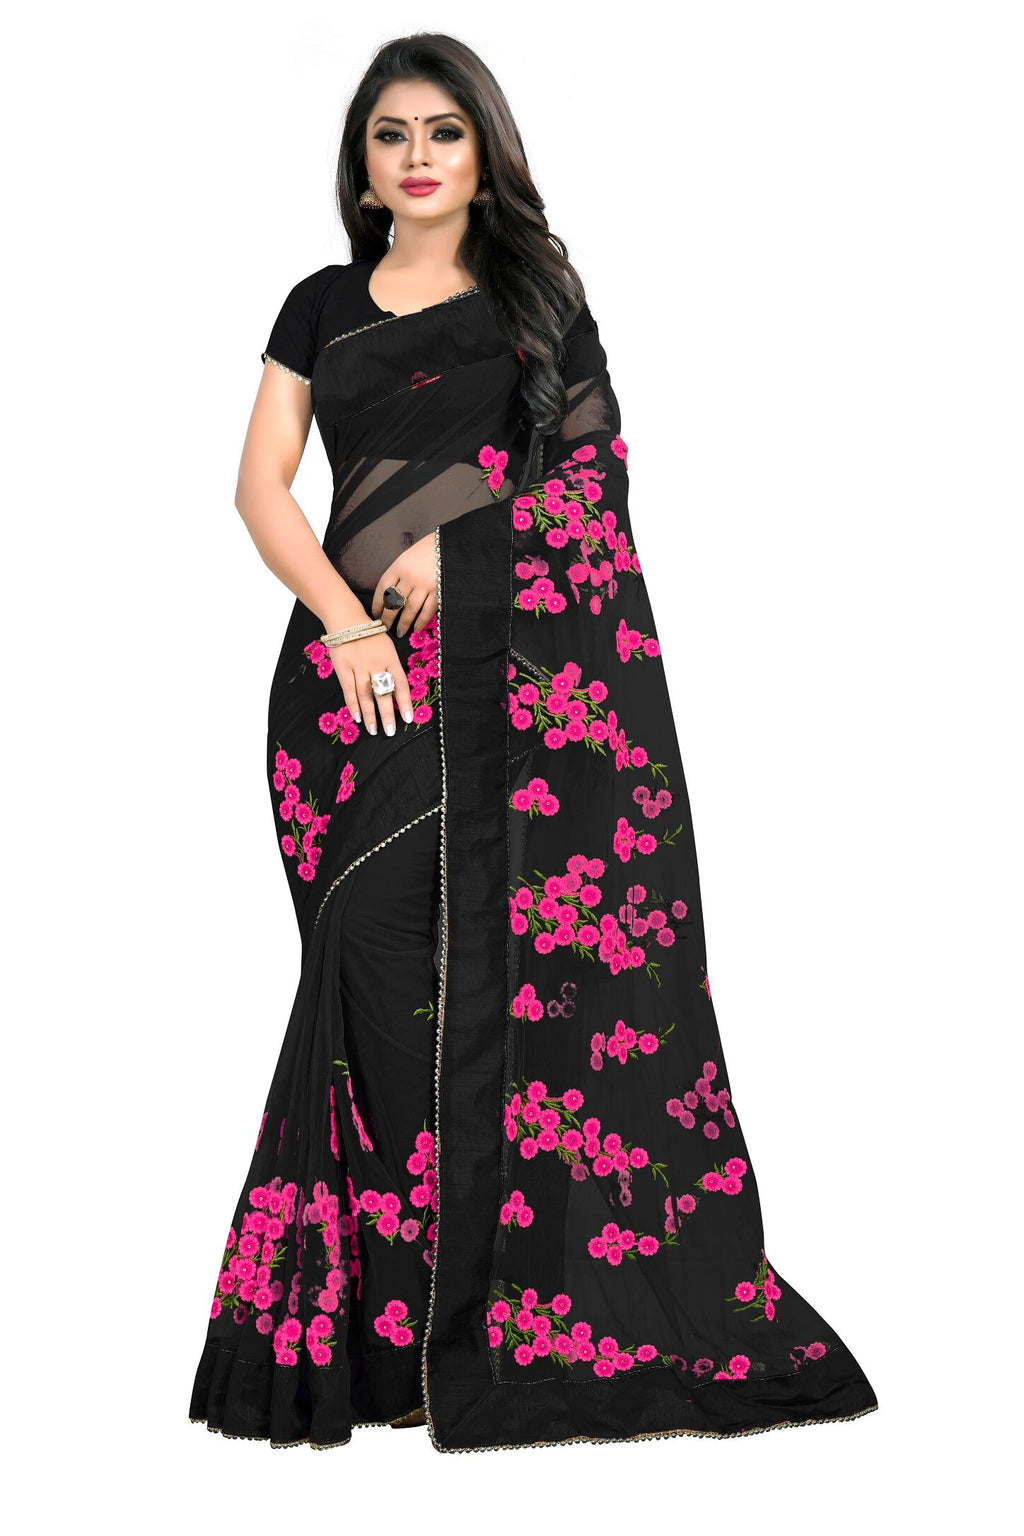 Black Bandhej Designer Saree With Blouse